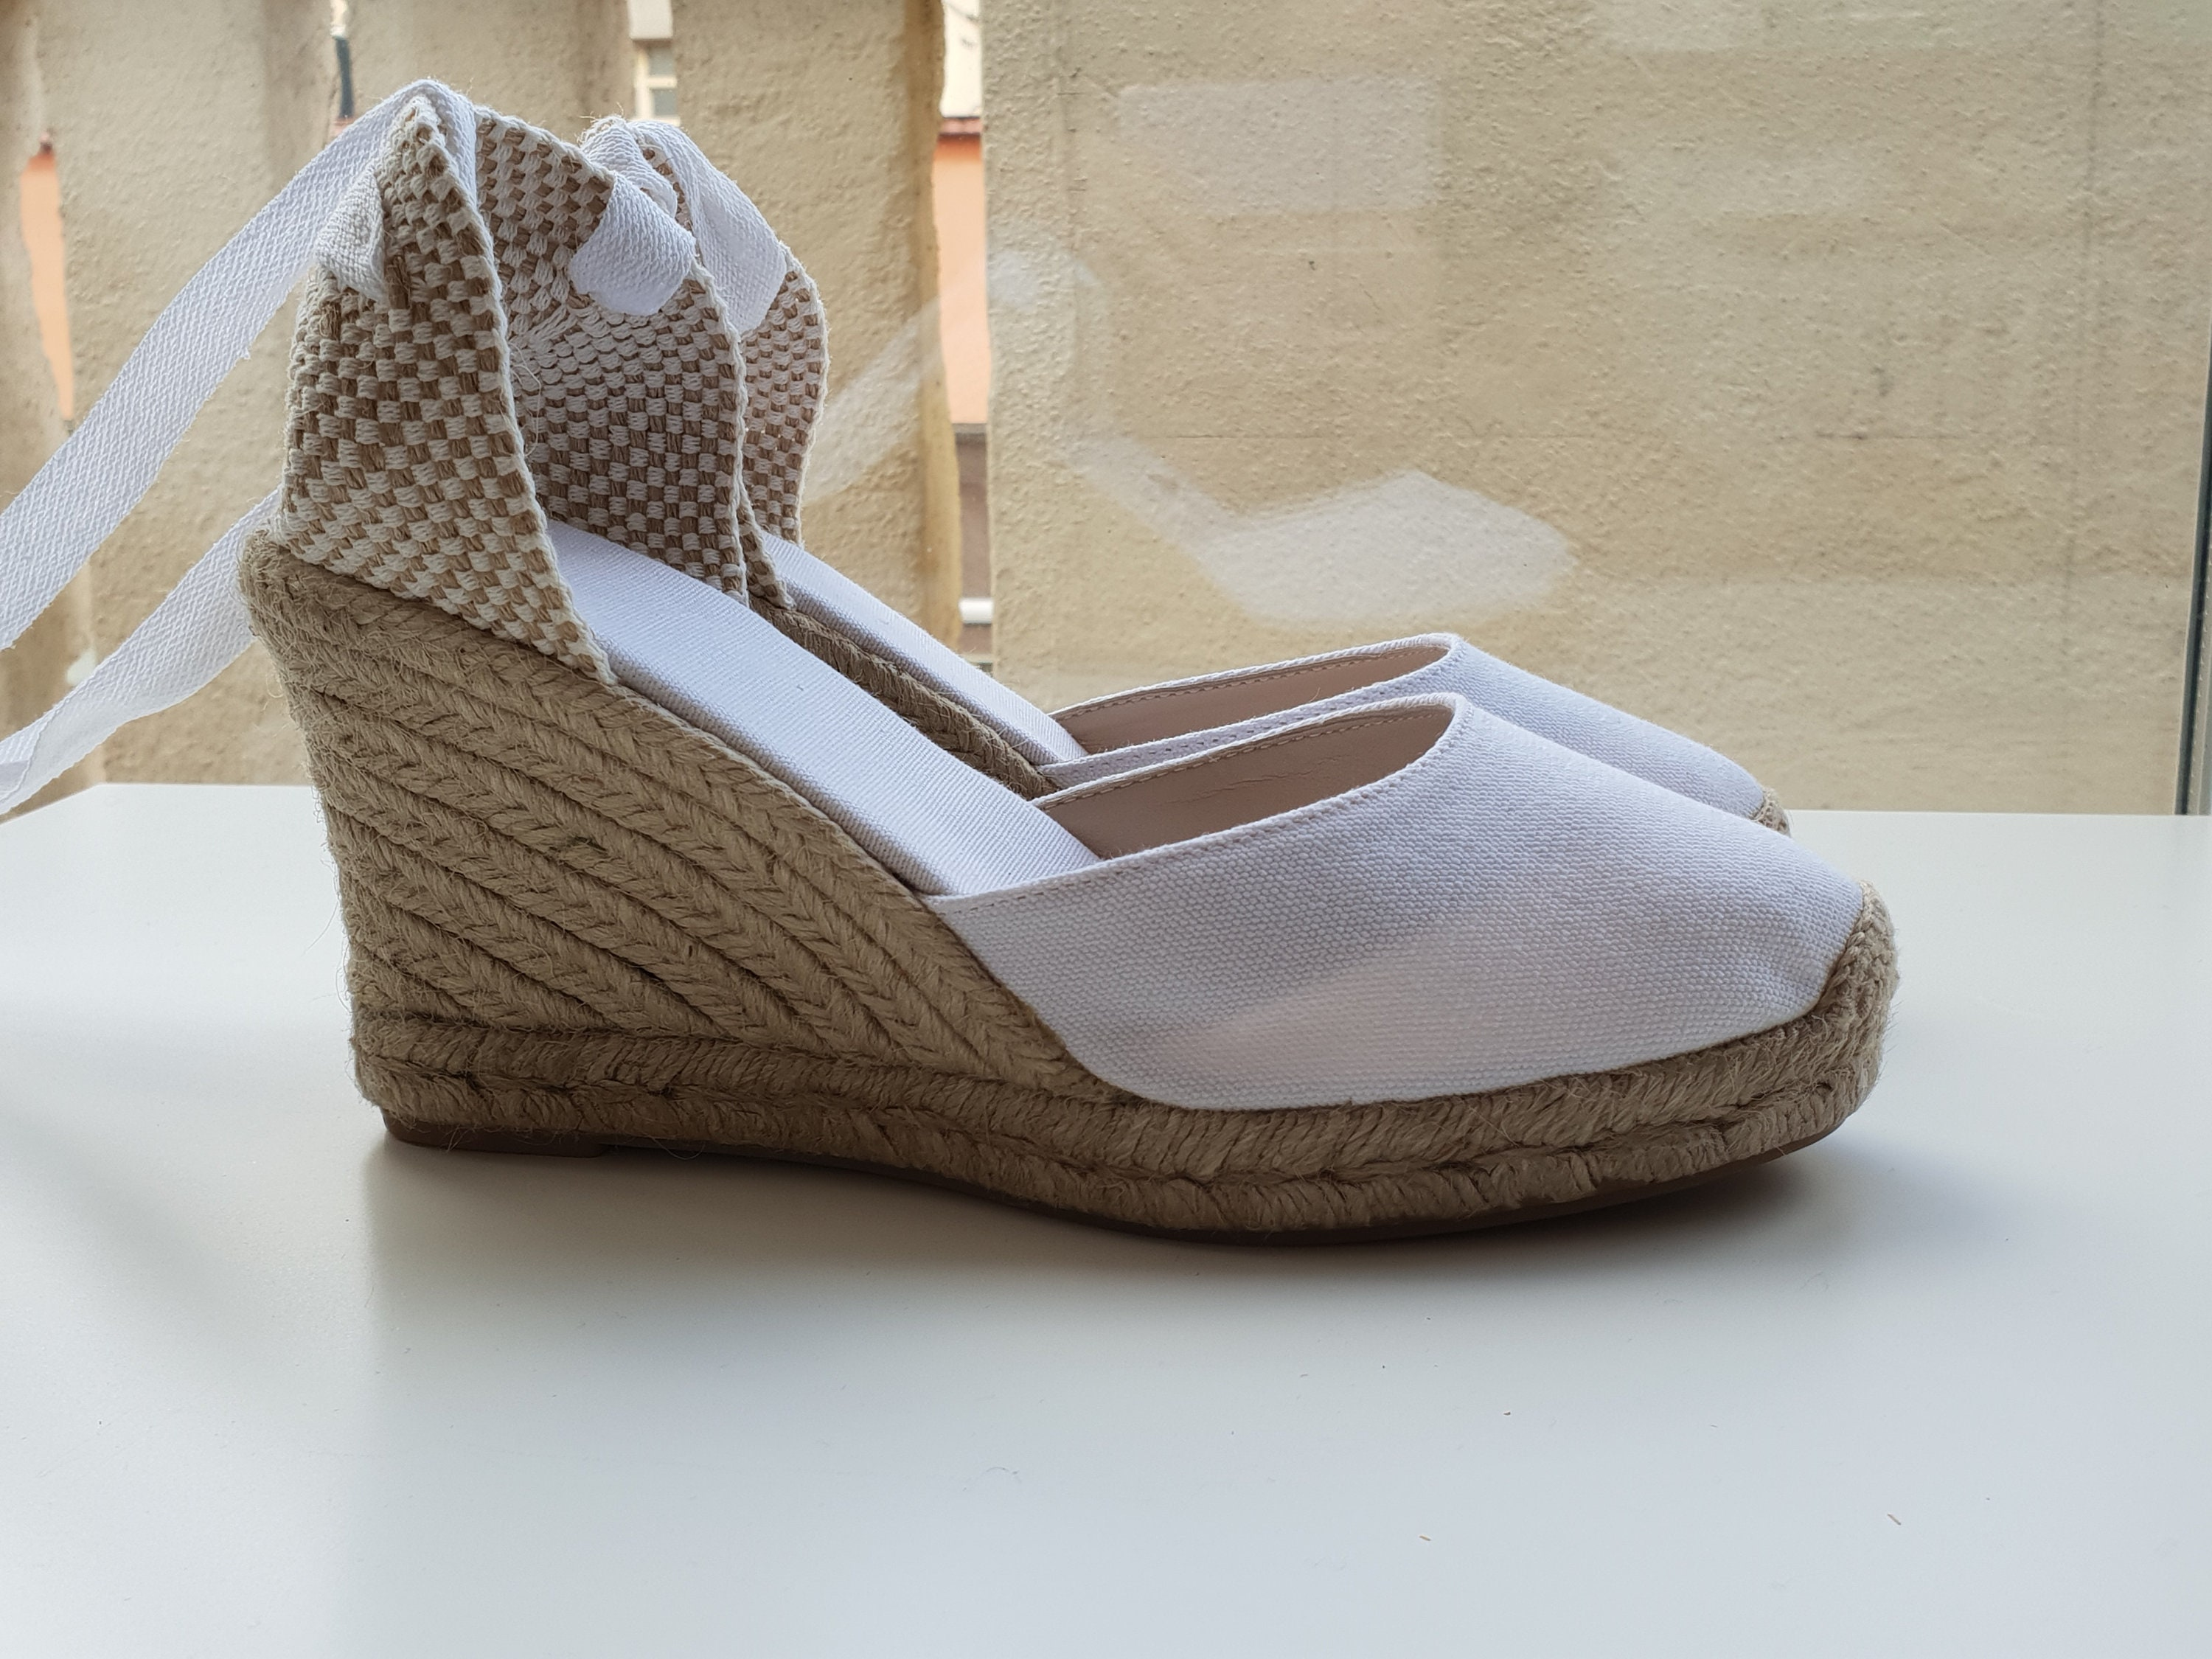 870bdfdf9 Lace Up pump espadrille wedges (9cm - 3.54i) - brides collection - FRONT  STITCHING / WHITE - Made in Spain - www.mumicospain.com-